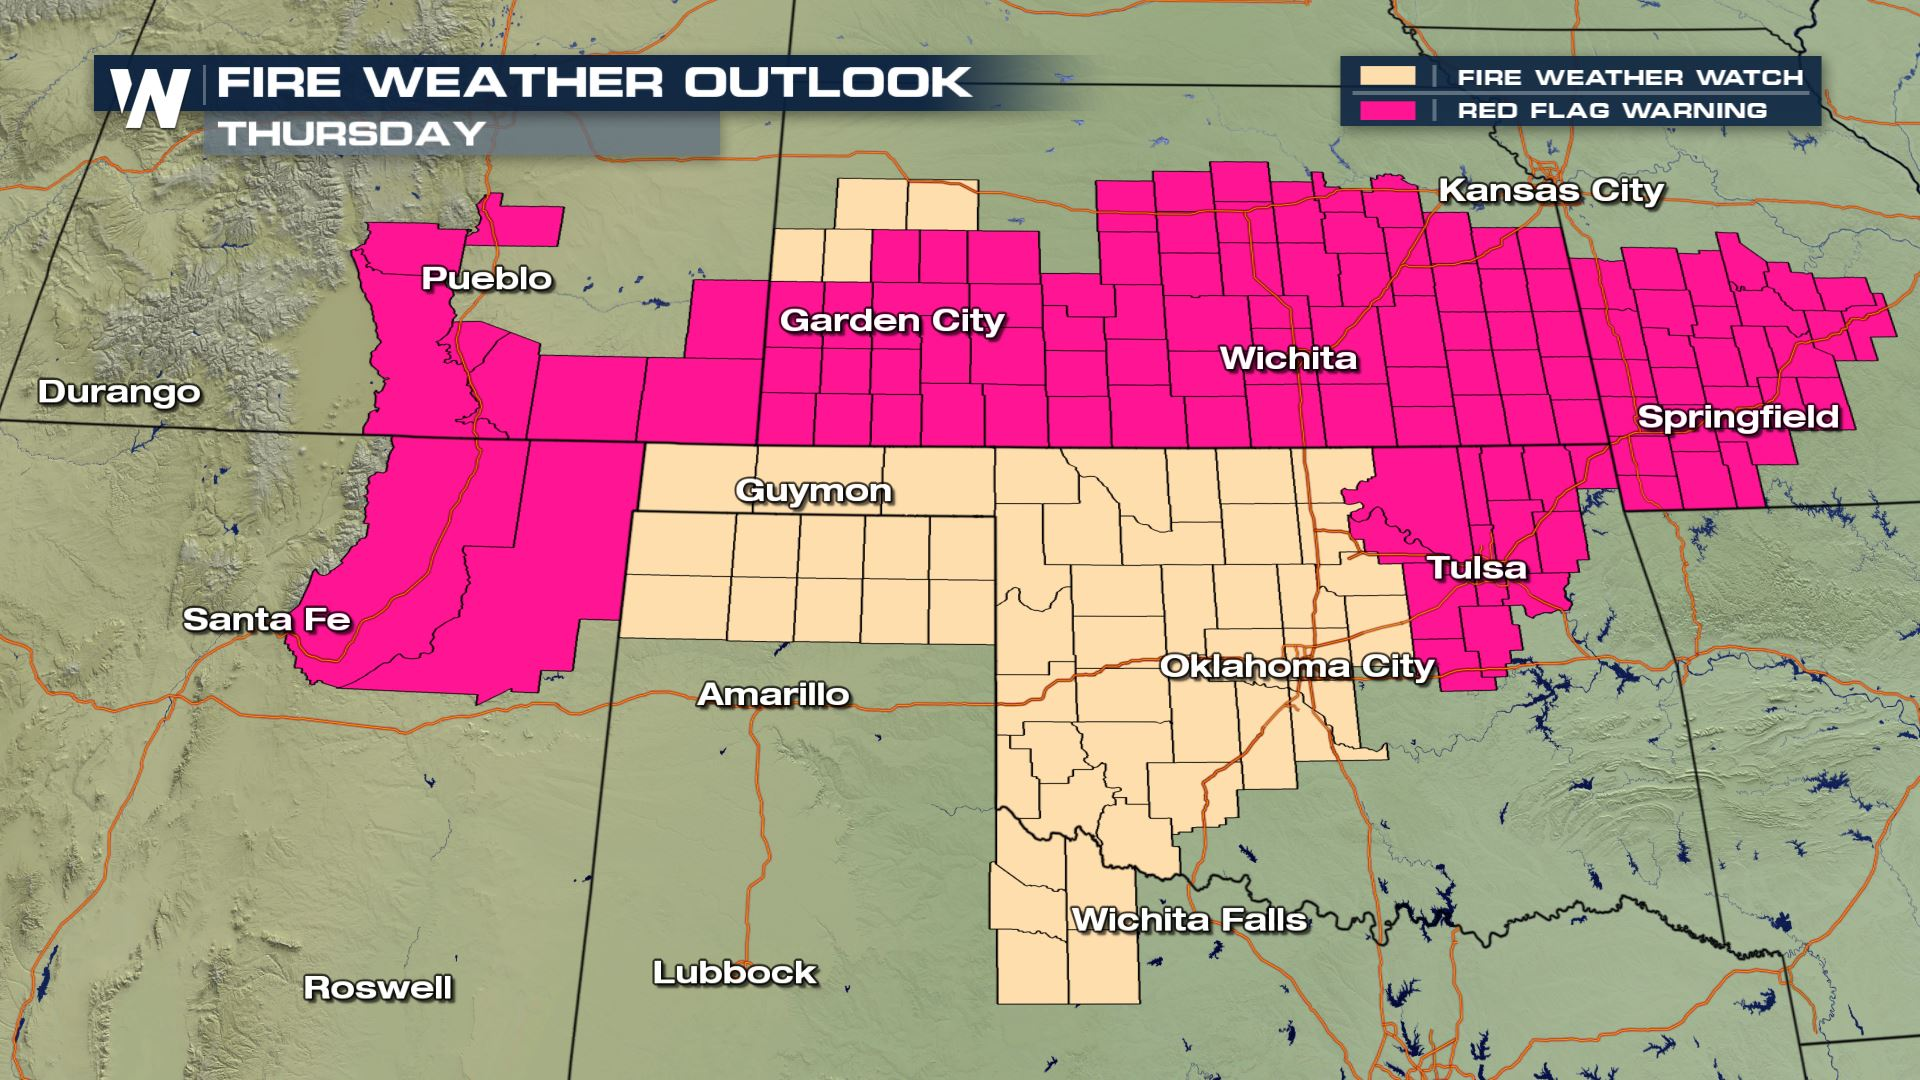 Wildfire Risk for the Central and Southern Plains - WeatherNation